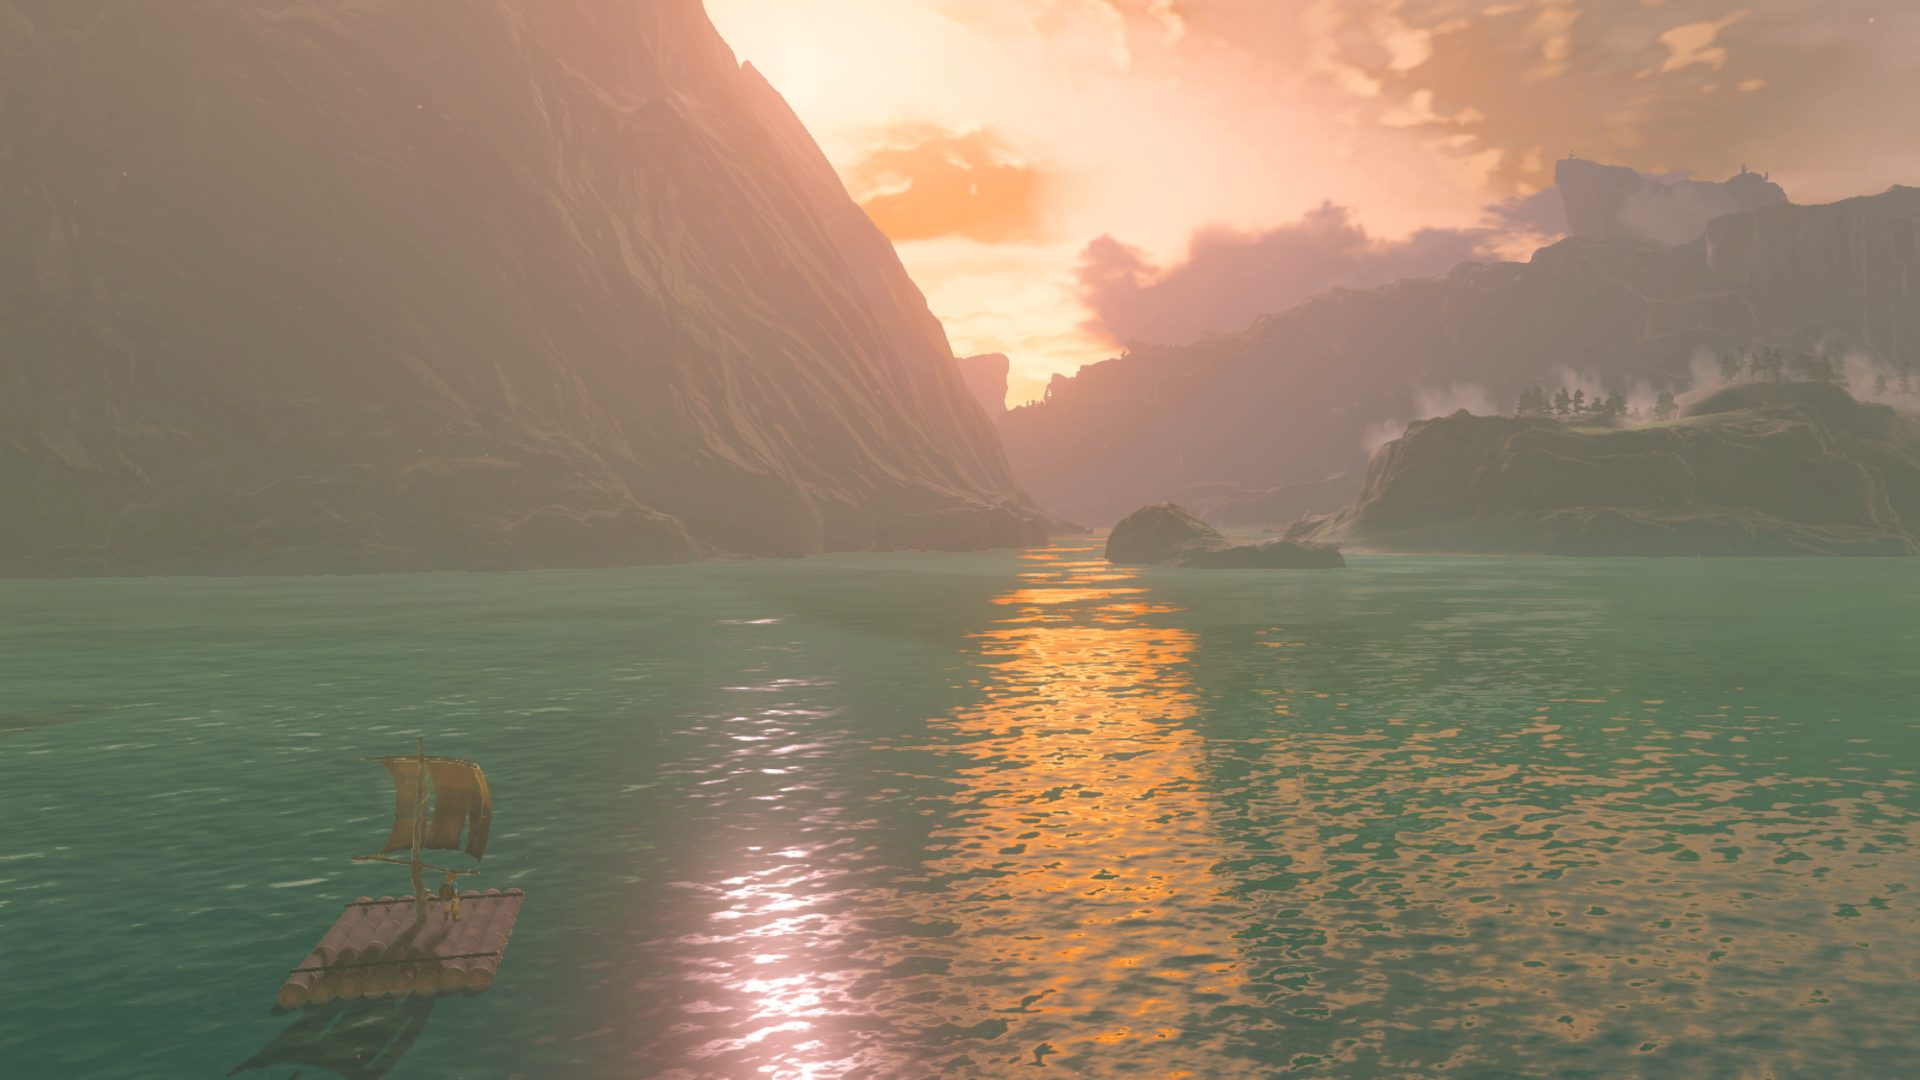 Kletterausrüstung Zelda Breath Of The Wild : The legend of zelda: breath wild u2013 so findet ihr die